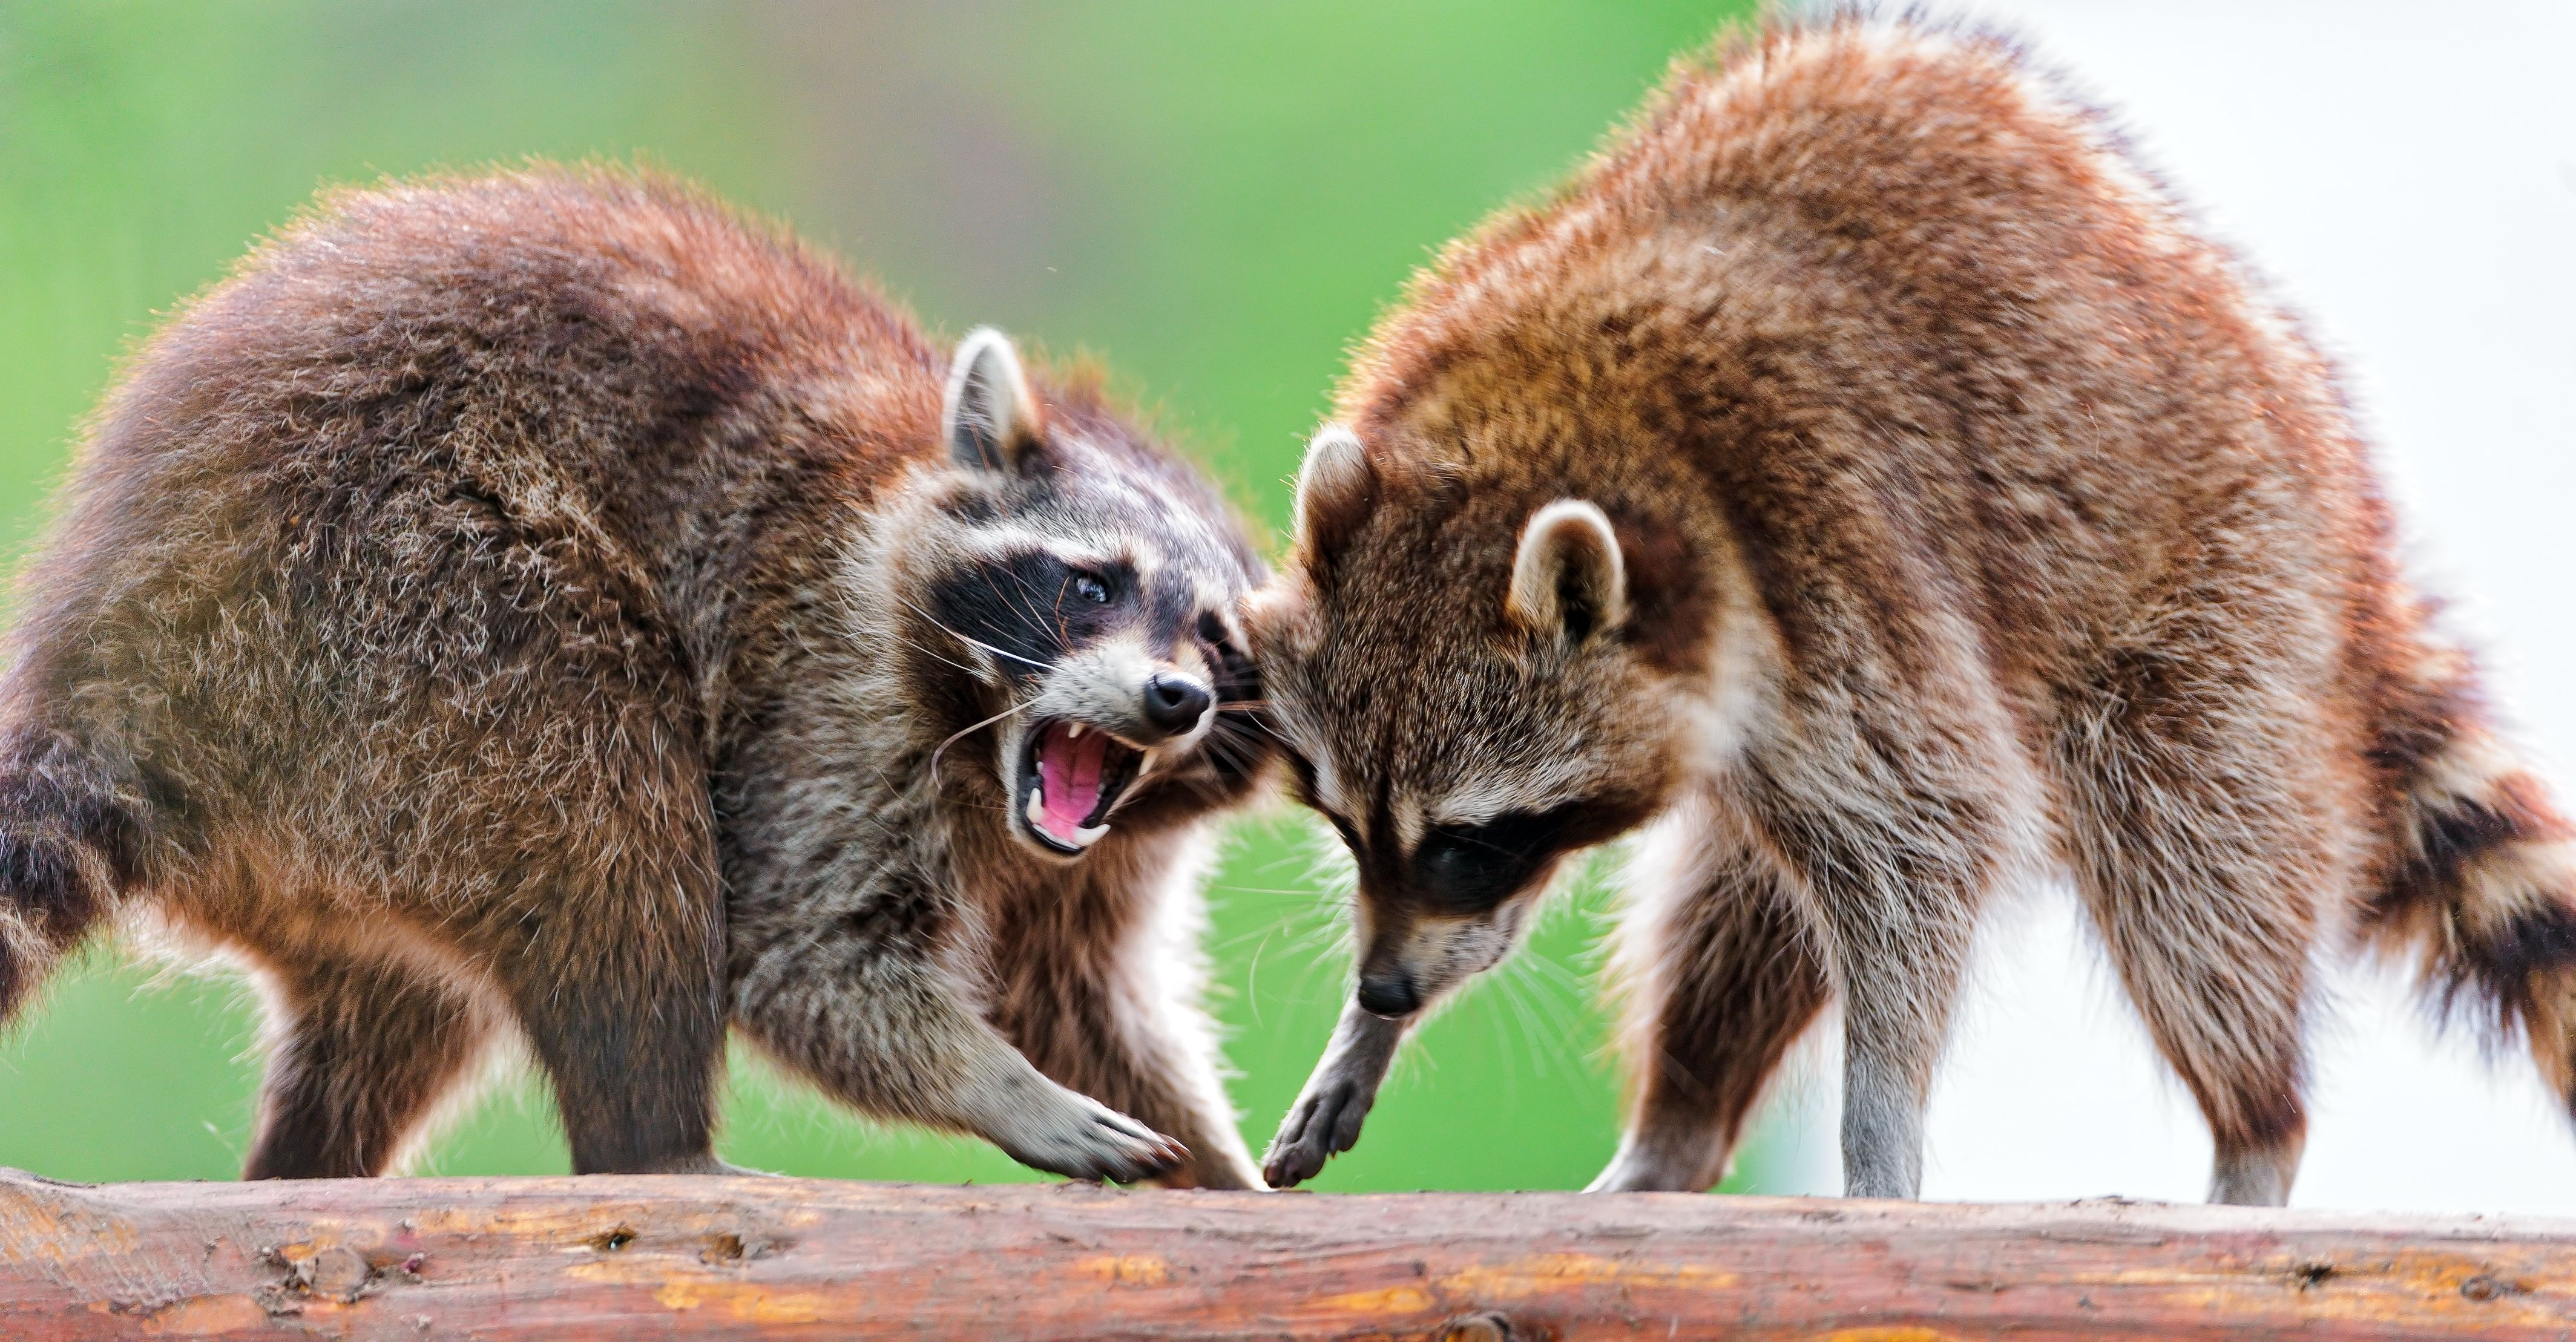 51274 download wallpaper Animals, Raccoons, Couple, Pair, Fight, Open Mouth screensavers and pictures for free